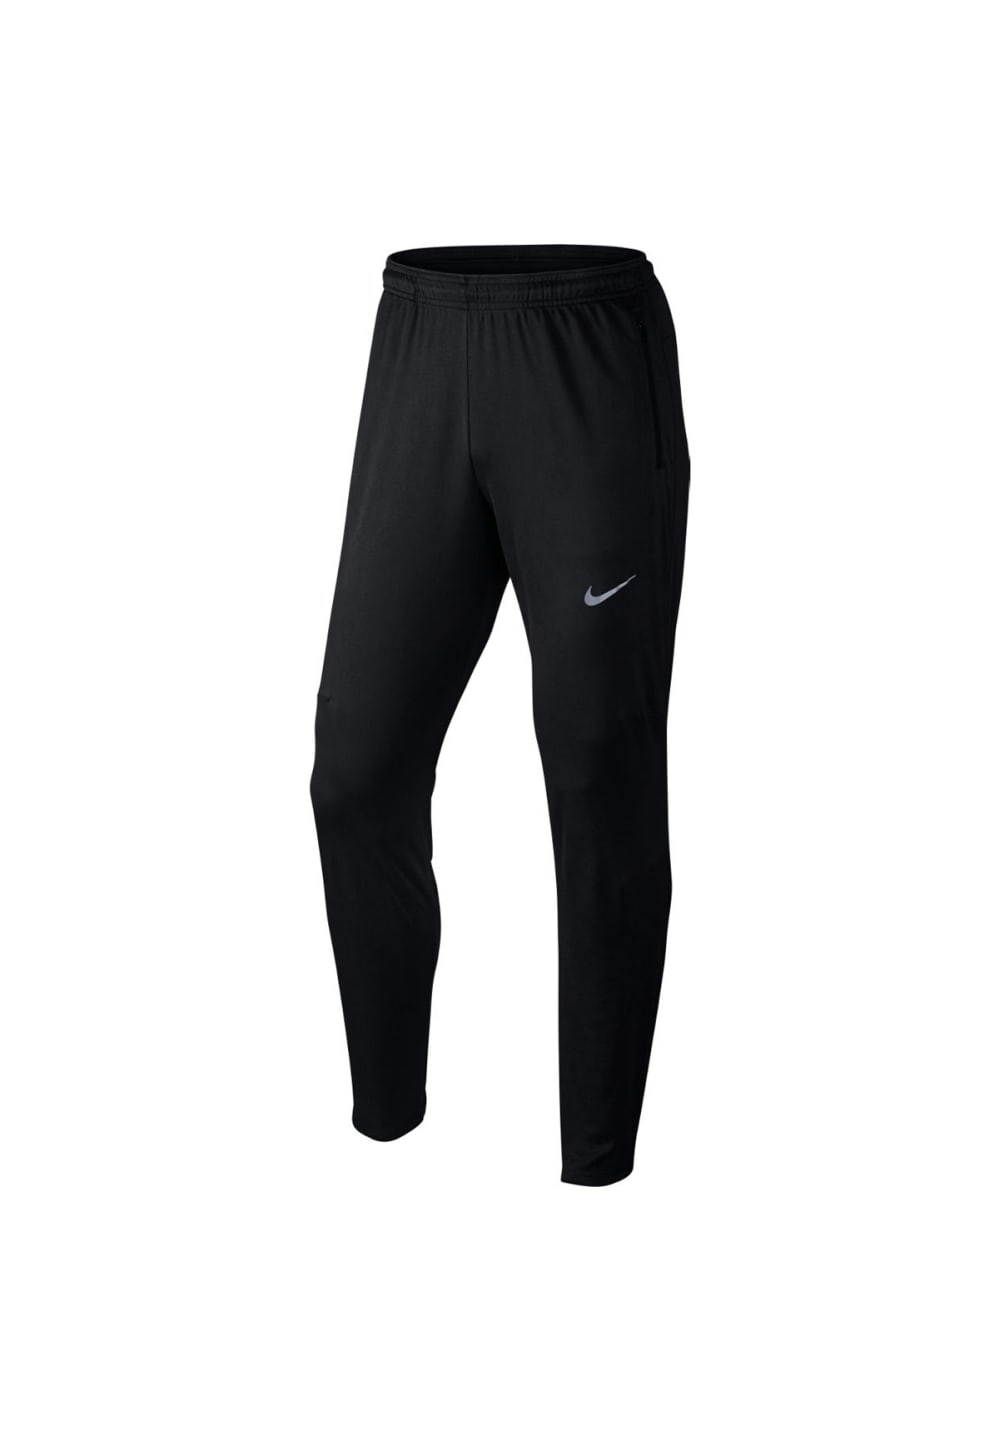 differently f7e87 a8a57 Nike Racer Knit Track Pant - Running trousers for Men - Black   21RUN